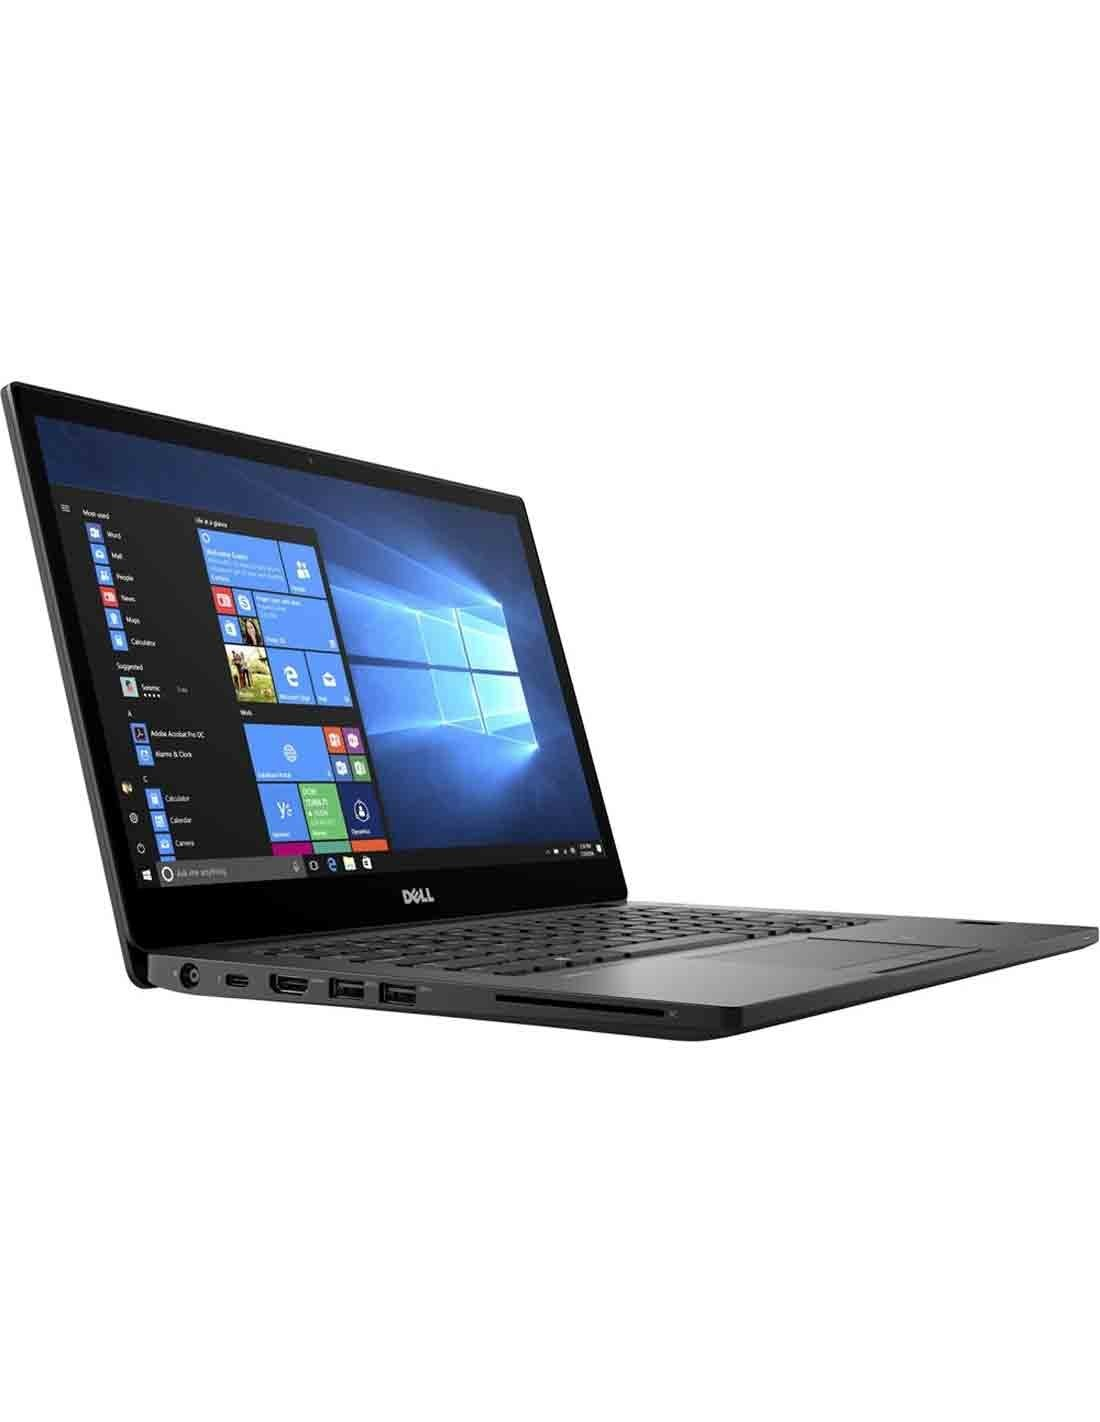 Buy Online Dell Latitude 7480 Core i5 Business Laptop Images and Pictures